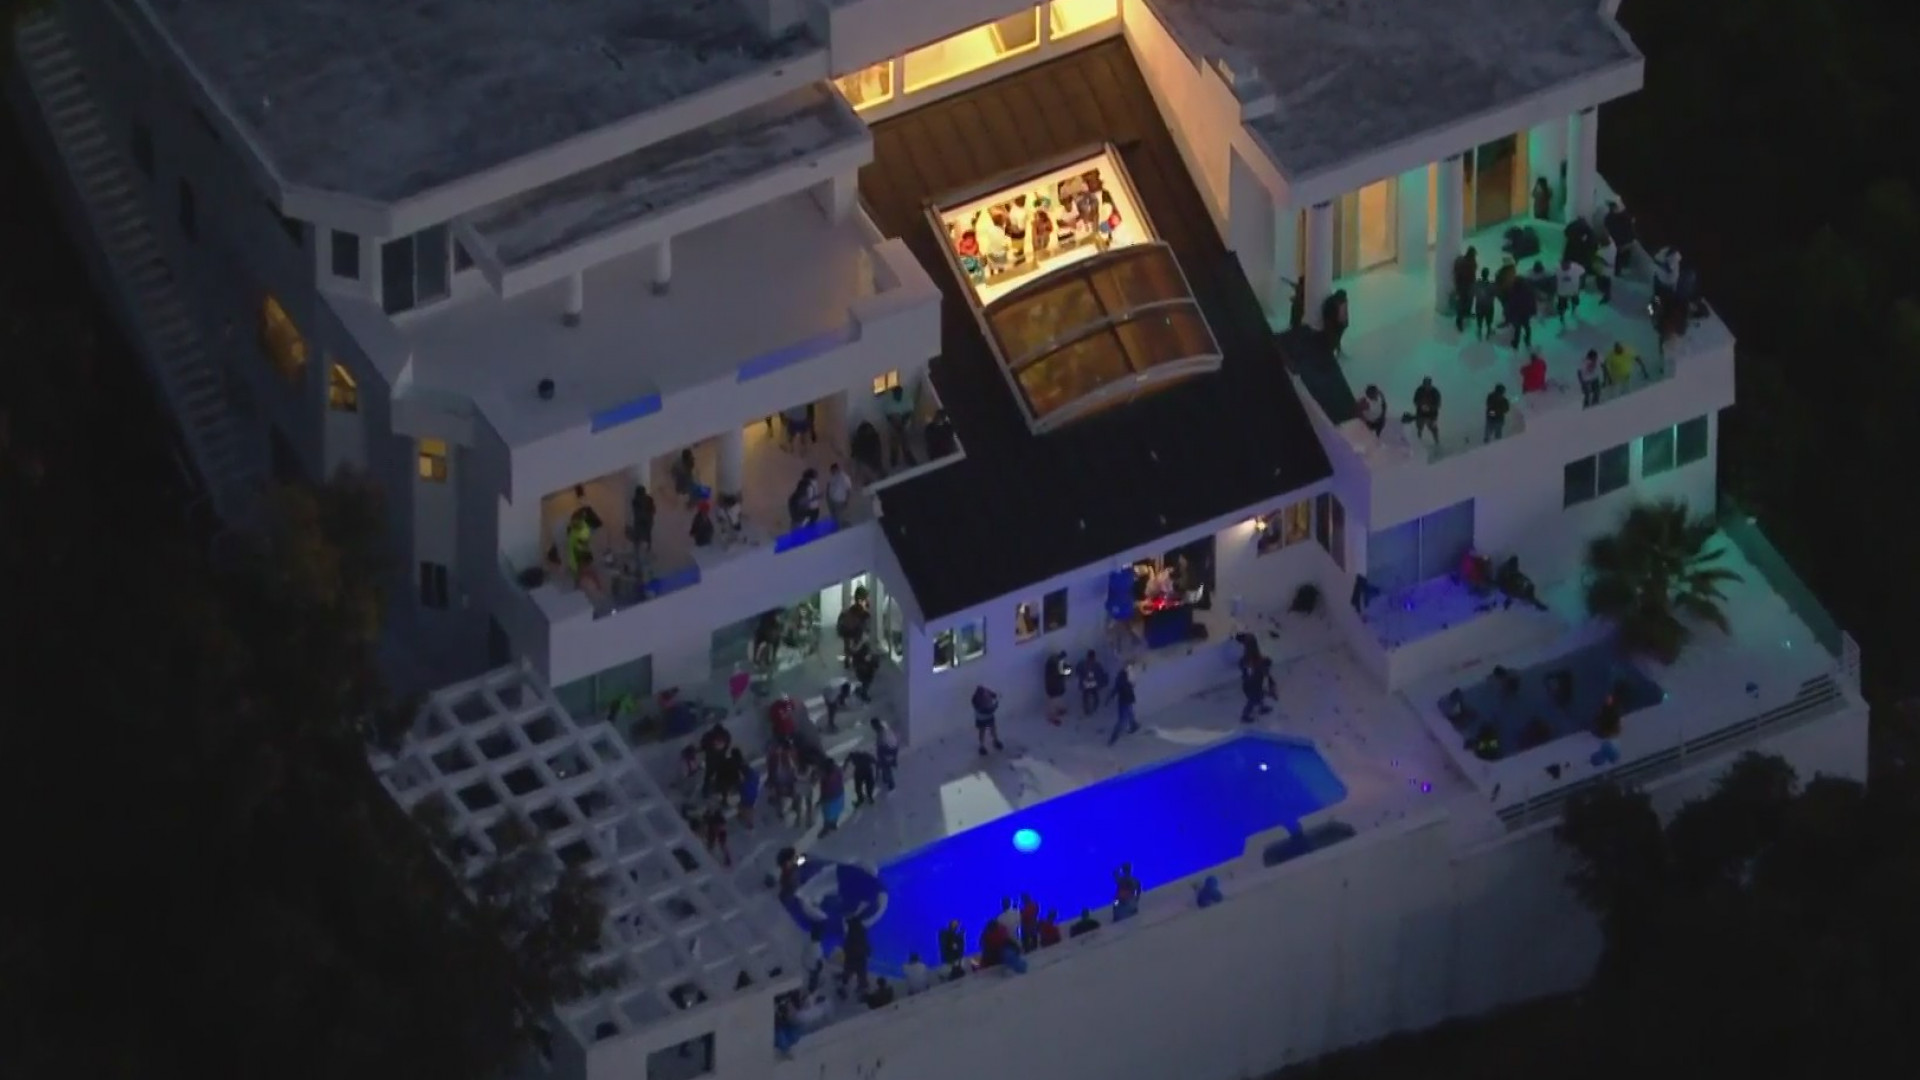 People party at a mansion in Beverly Crest before police responded to a shooting there on Aug. 4, 2020. (KTLA)